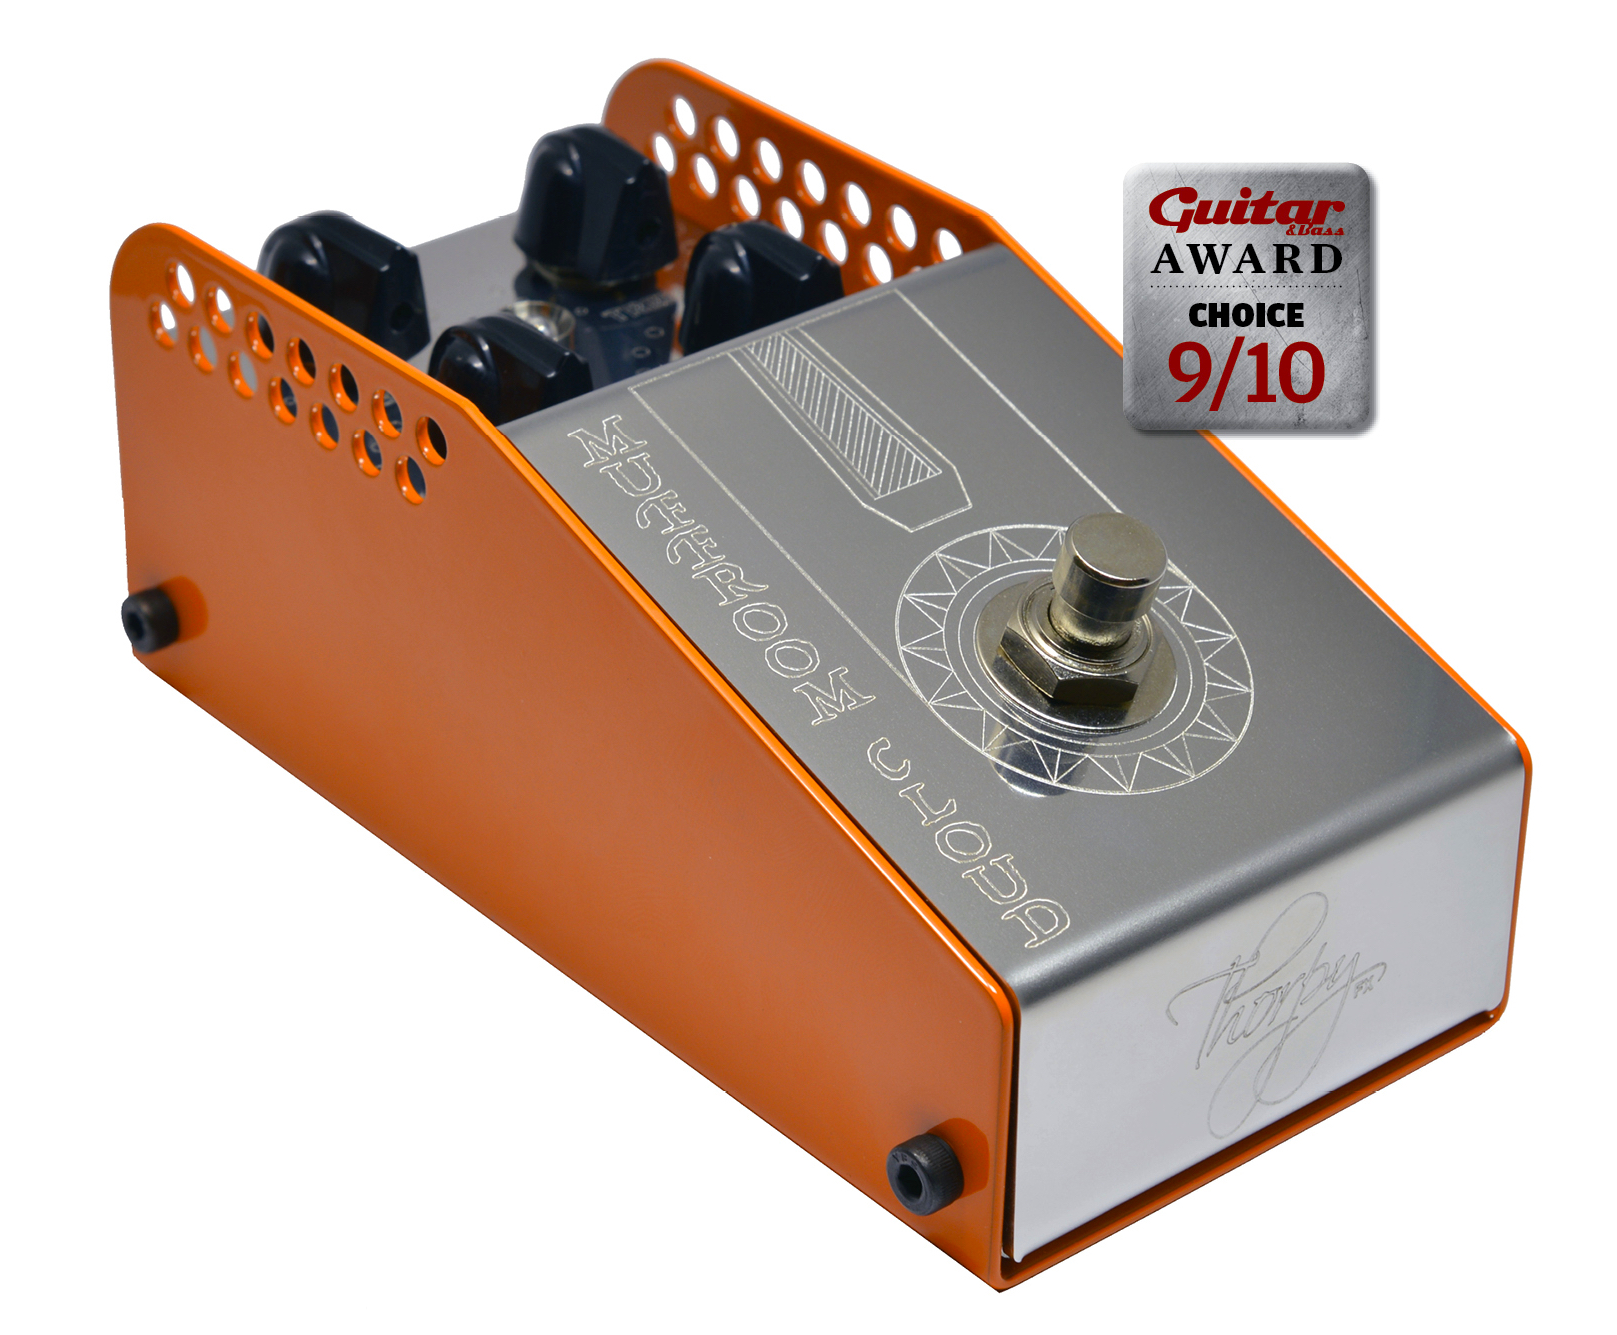 thorpyfx muffroom cloud fuzz pedal review the guitar magazine the guitar magazine. Black Bedroom Furniture Sets. Home Design Ideas